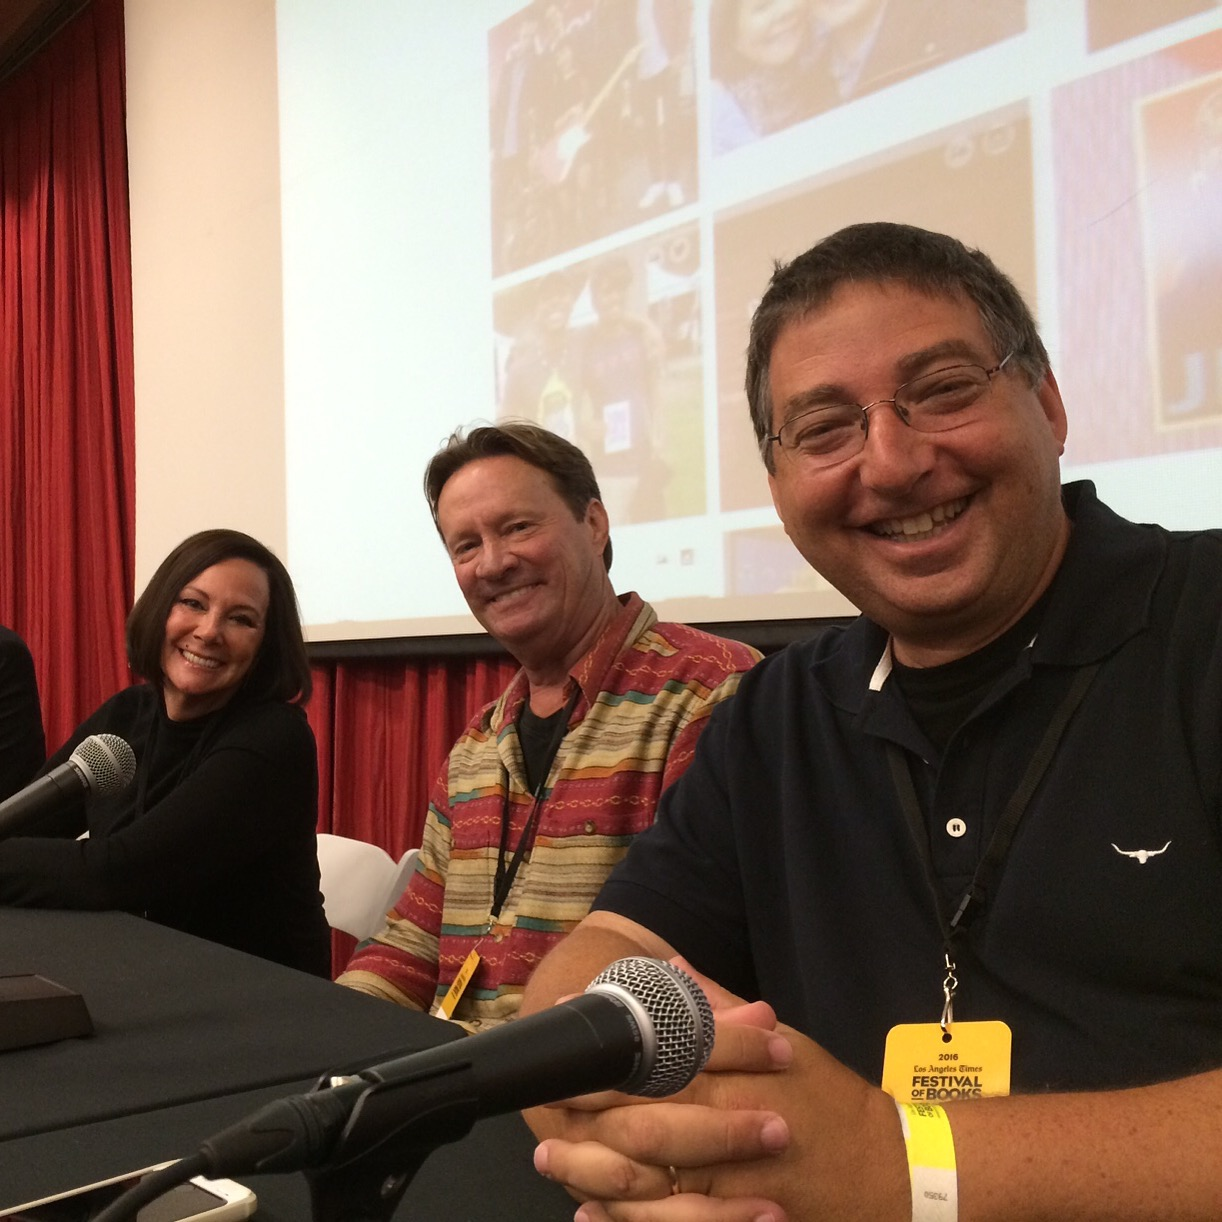 Marcia Clark, T. Jefferson Parker and me on a panel at the Los Angeles Times Festival of Books